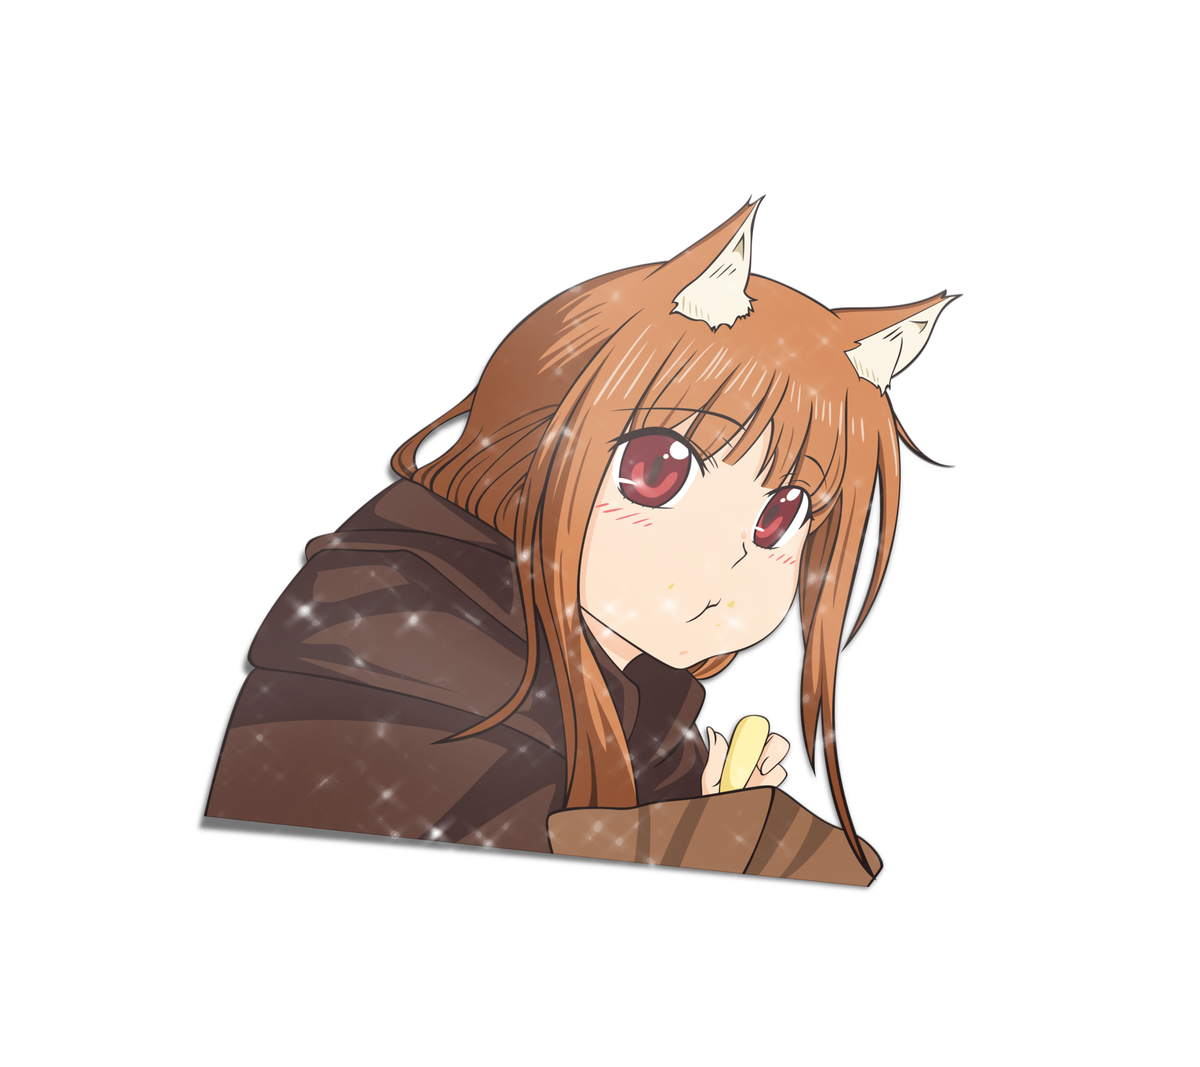 Image of Guilty Holo